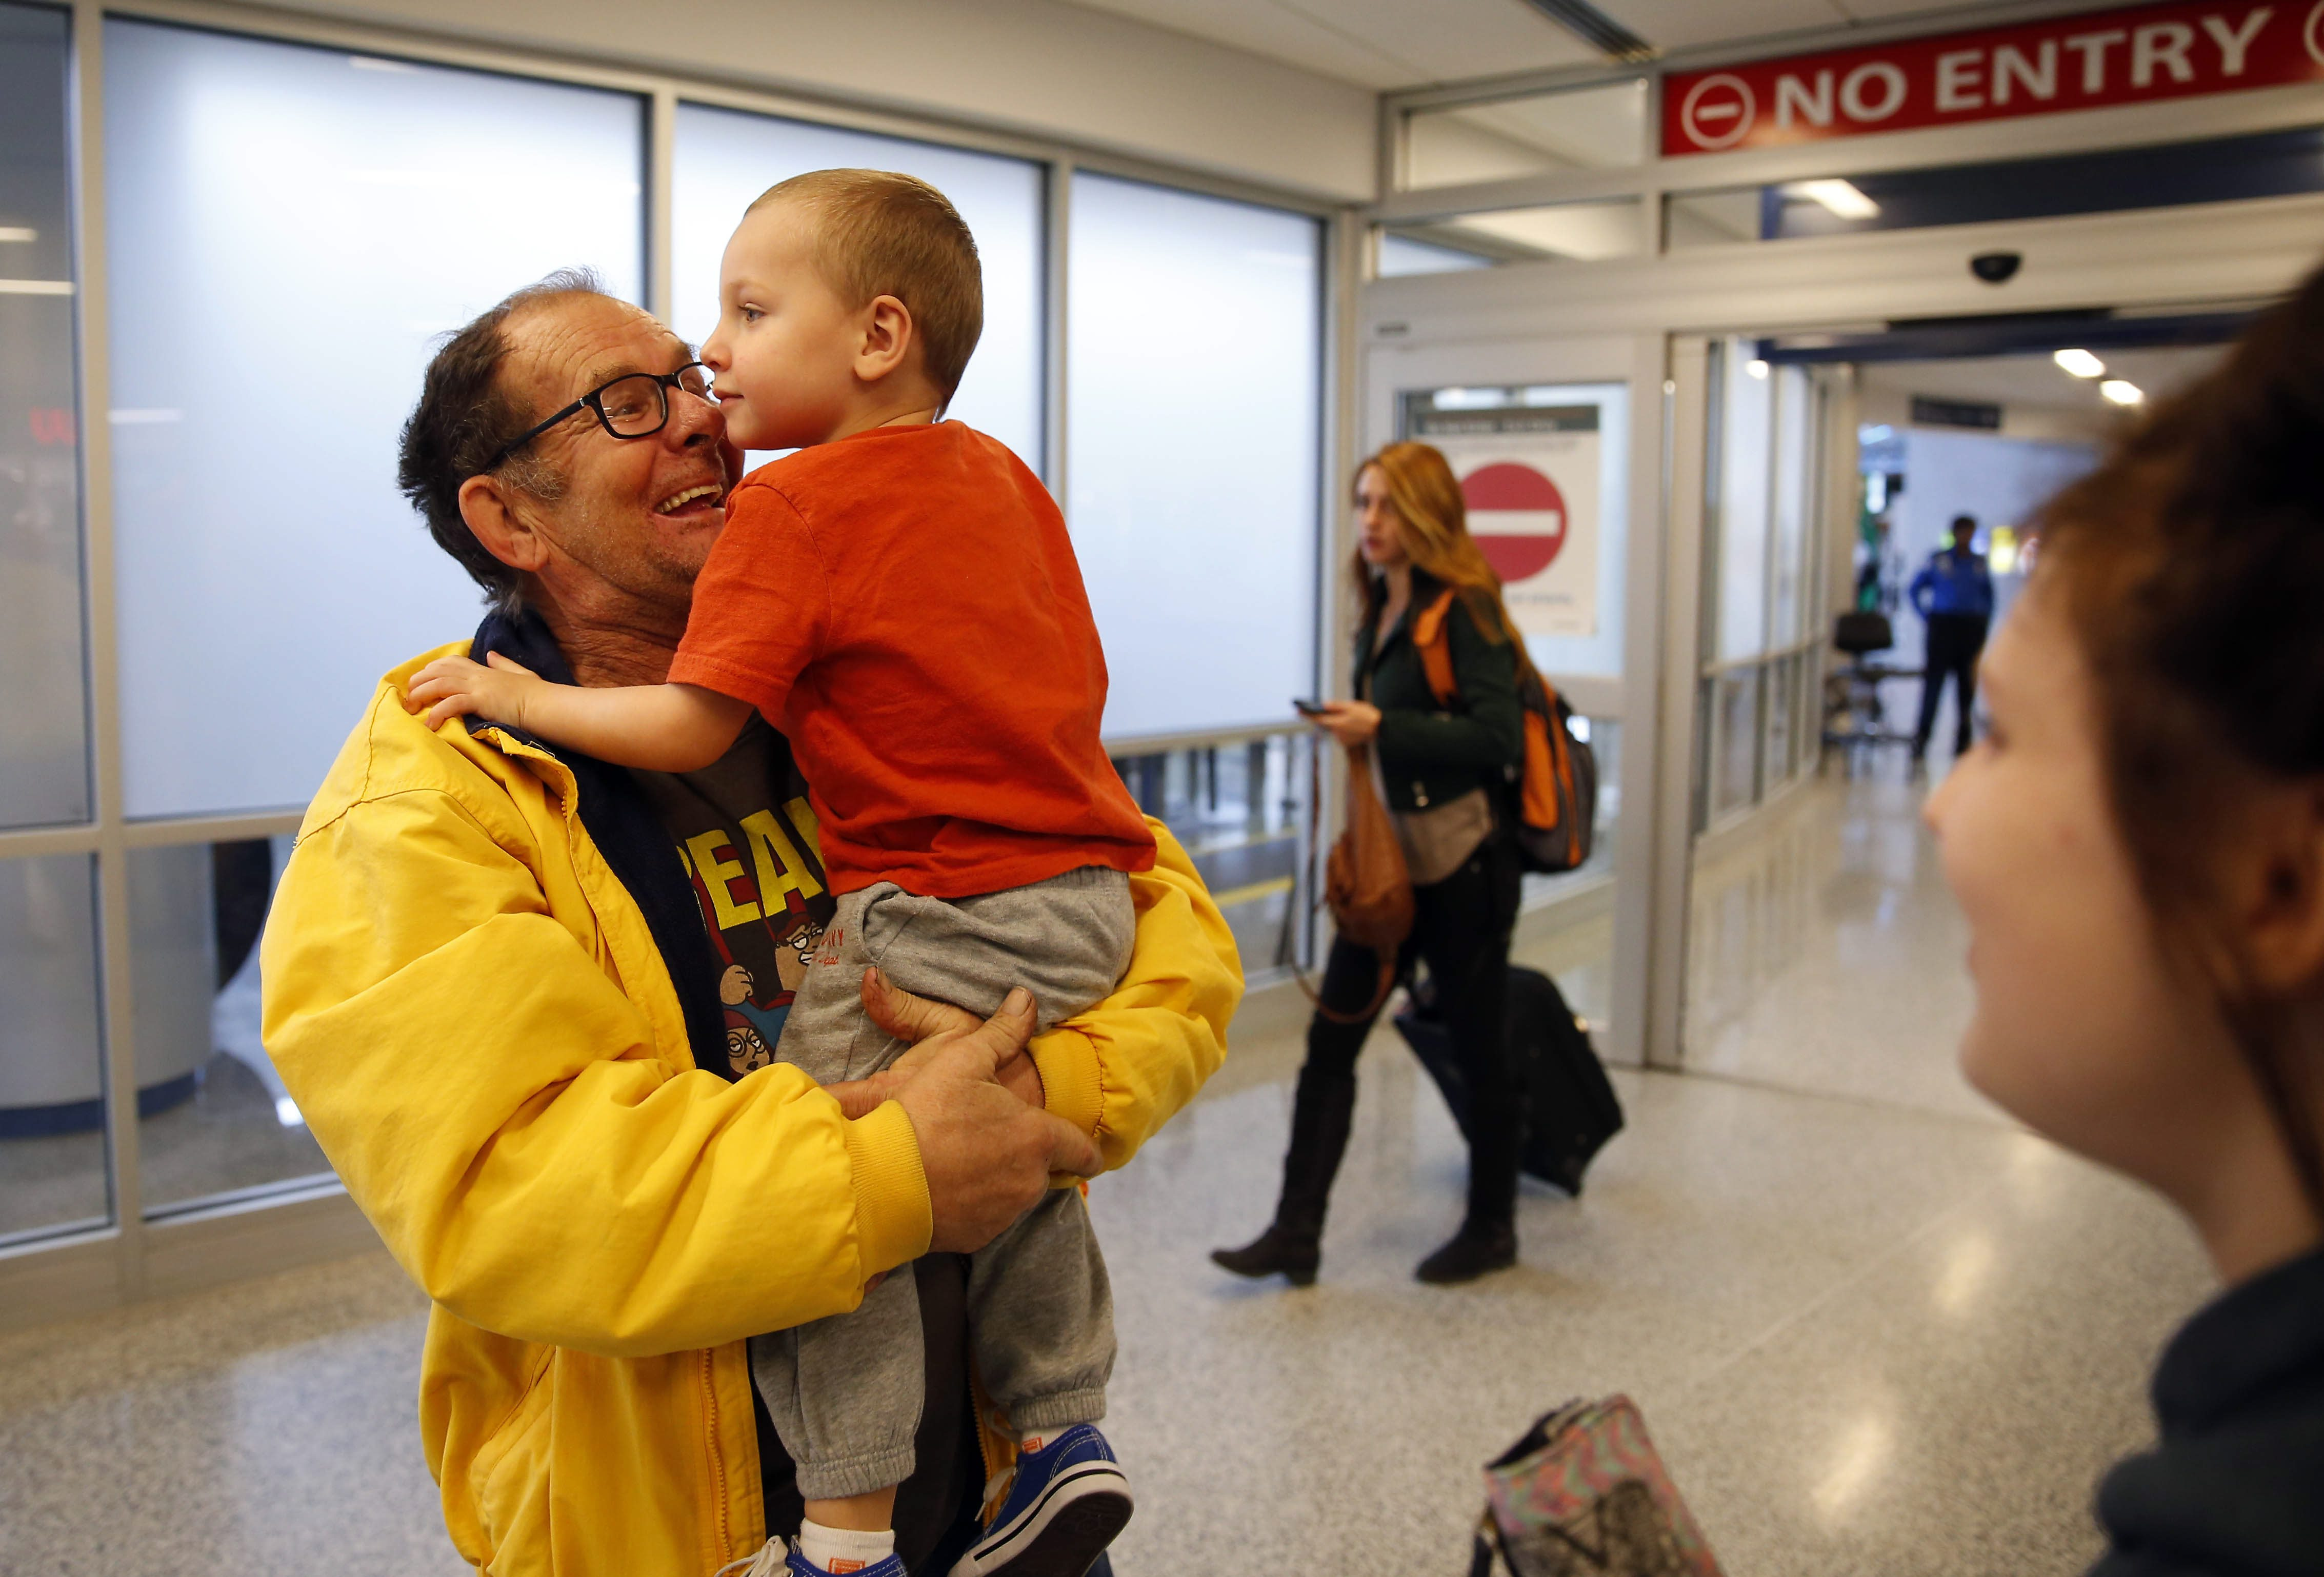 Ed Rak of Dunkirk, greets his grandson Landon LaFaur of Texas, at the airport on Dec. 23. (Mark Mulville/Buffalo News)